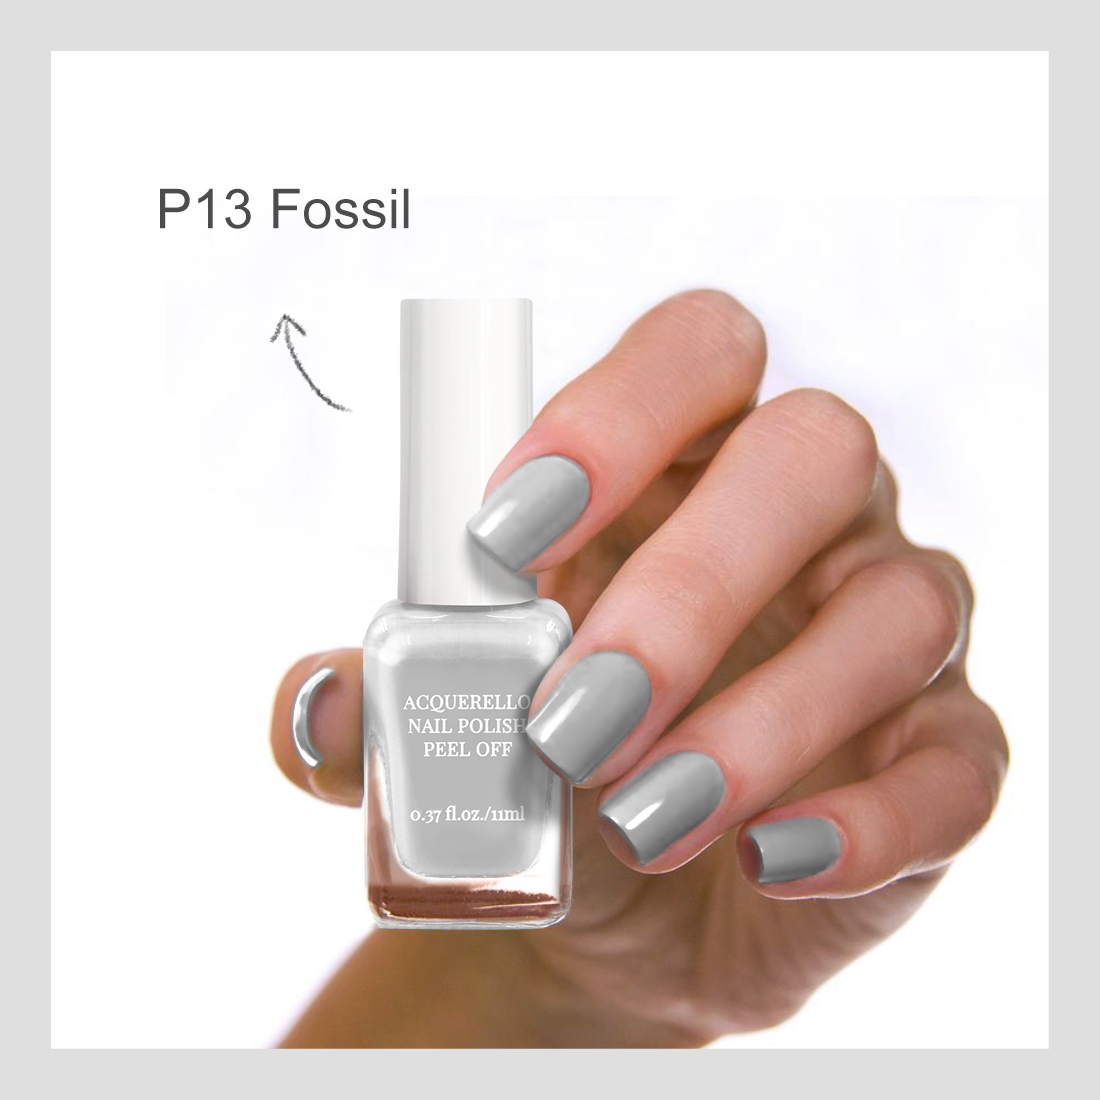 Miniso Official Acquerello Peel Off Nail Polish - thirteen thumbnail